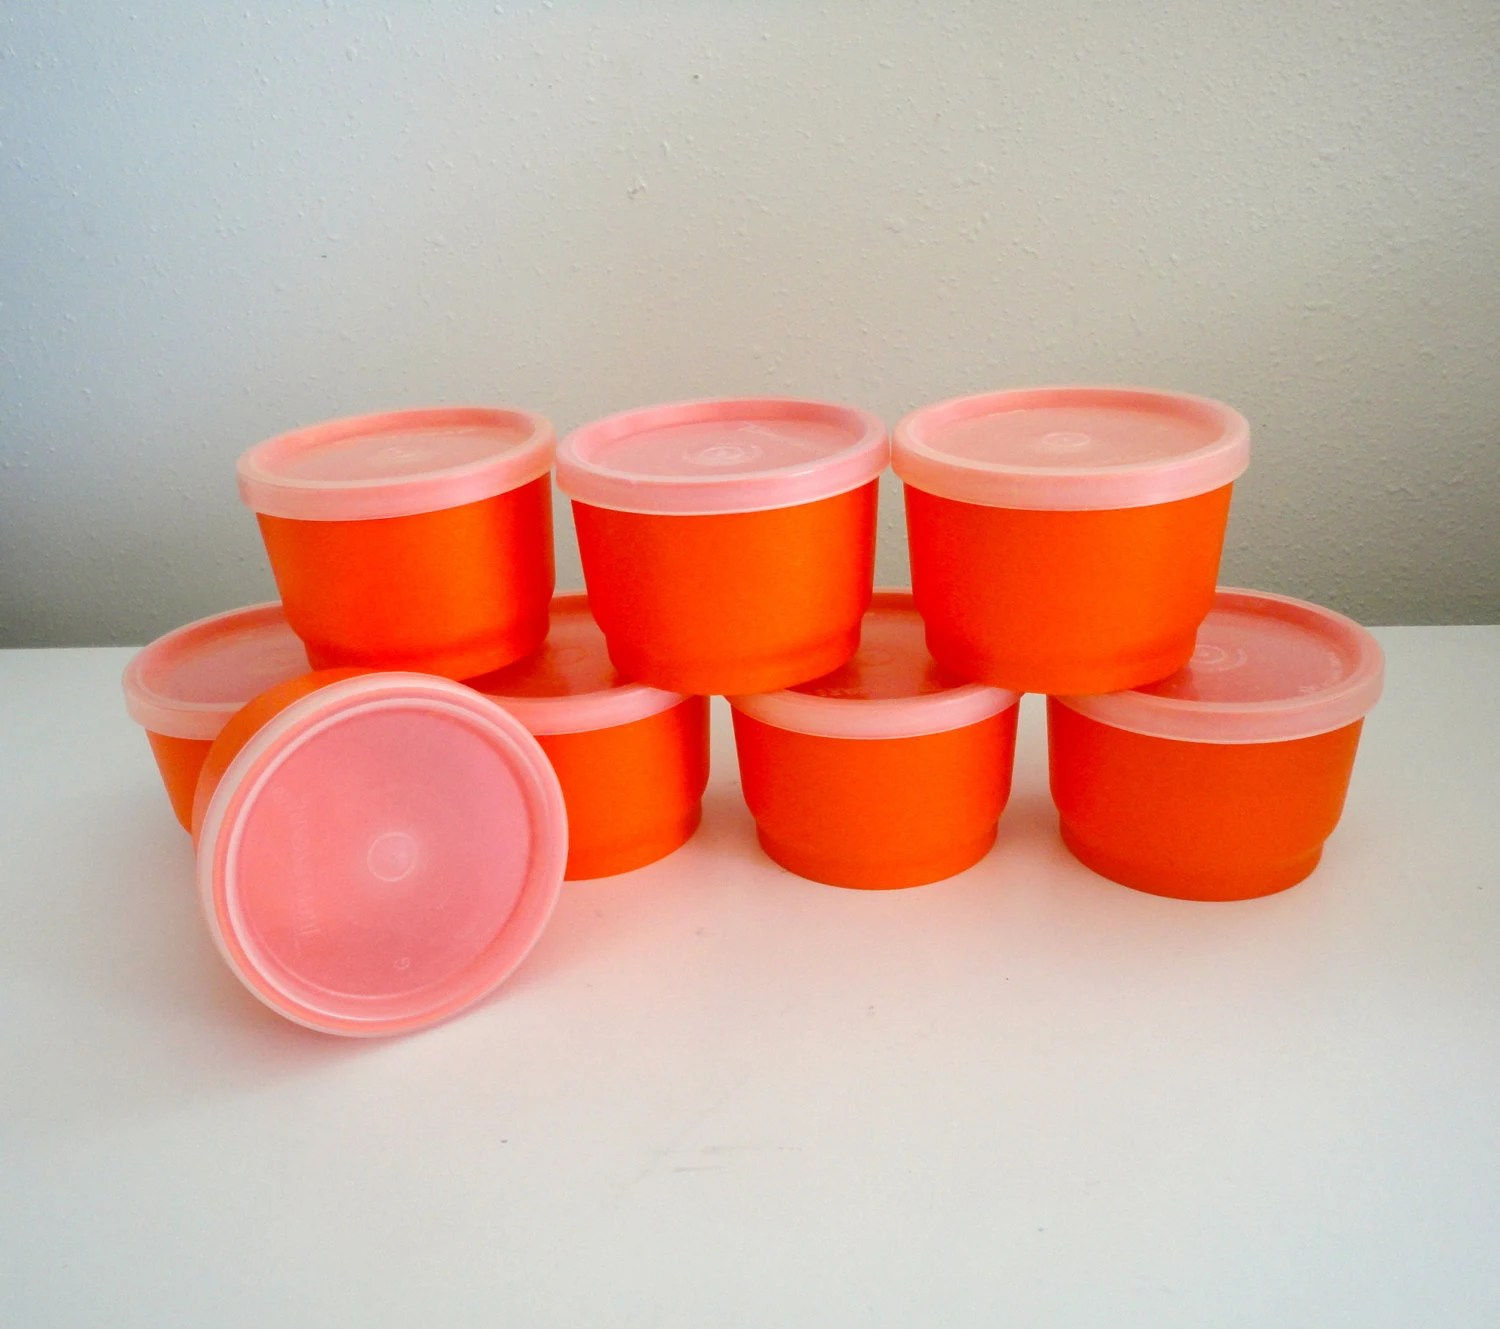 Vintage Tupperware Snack Cups Or Snack Containers With Lids In